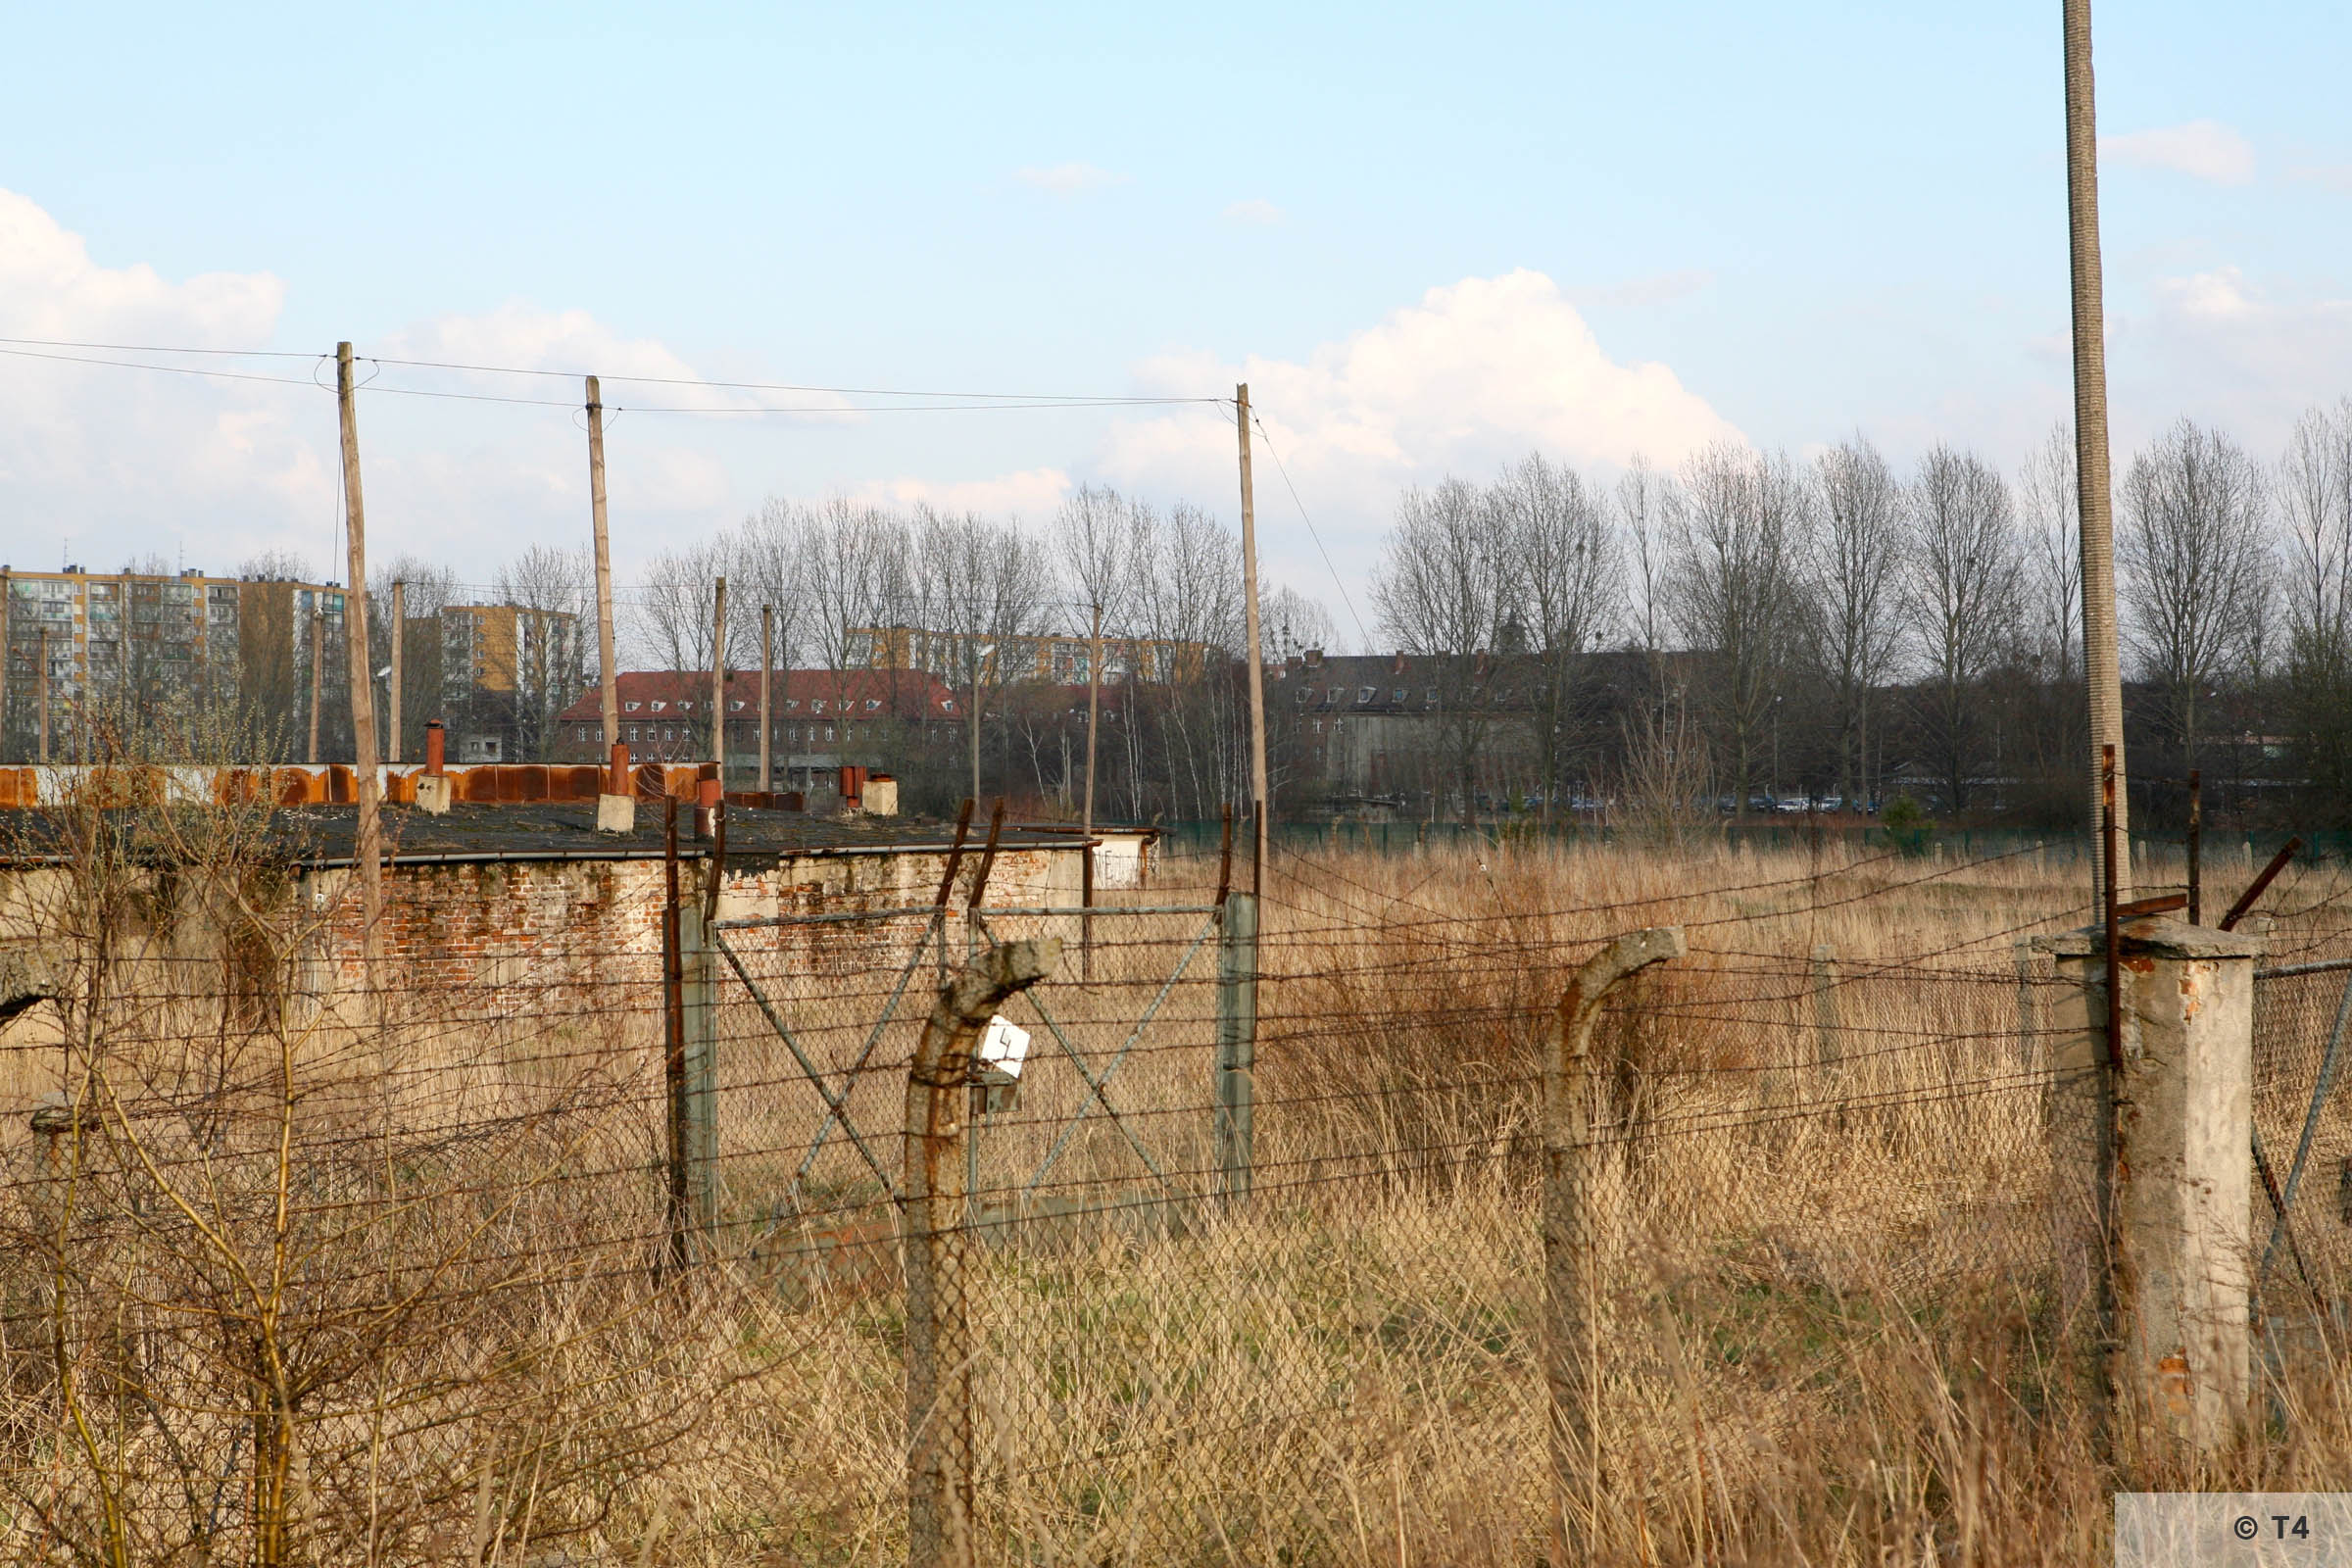 Area of former Holzgas factory and bunkers. 2007 T4 6079